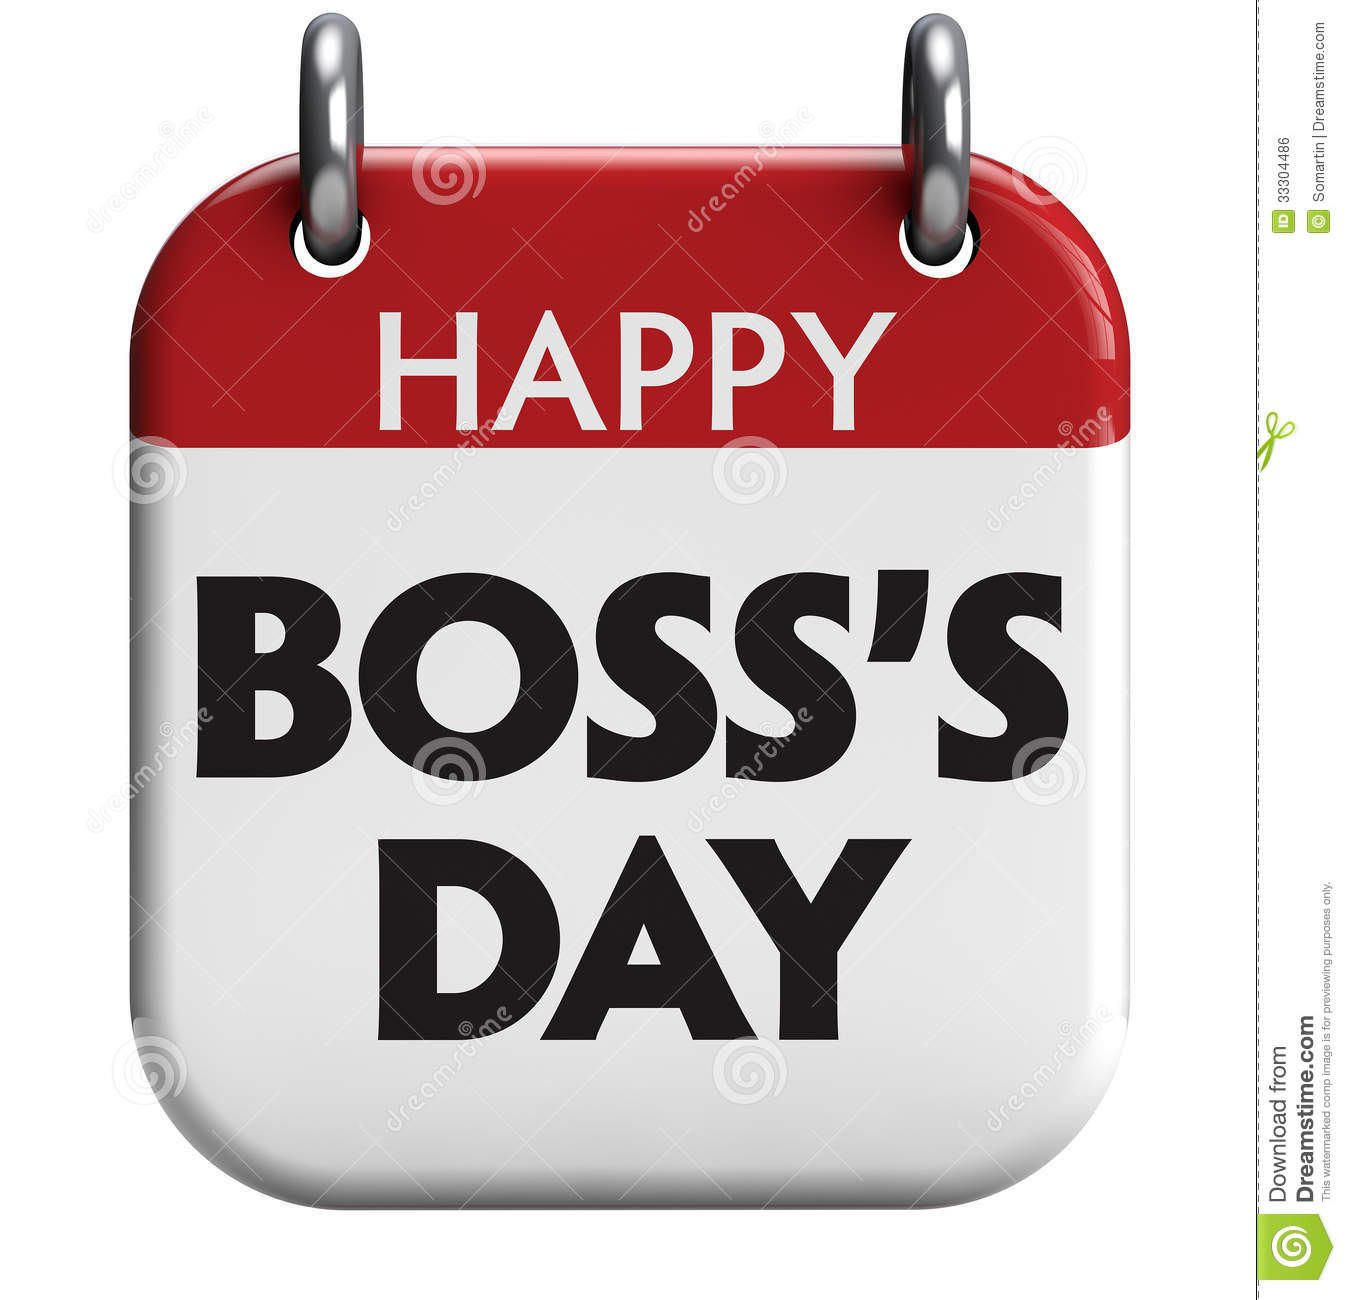 Happy Bosss Day Clip Art Free Happy Boss-Happy Bosss Day Clip Art Free Happy Bosses Day Printable Card View-11